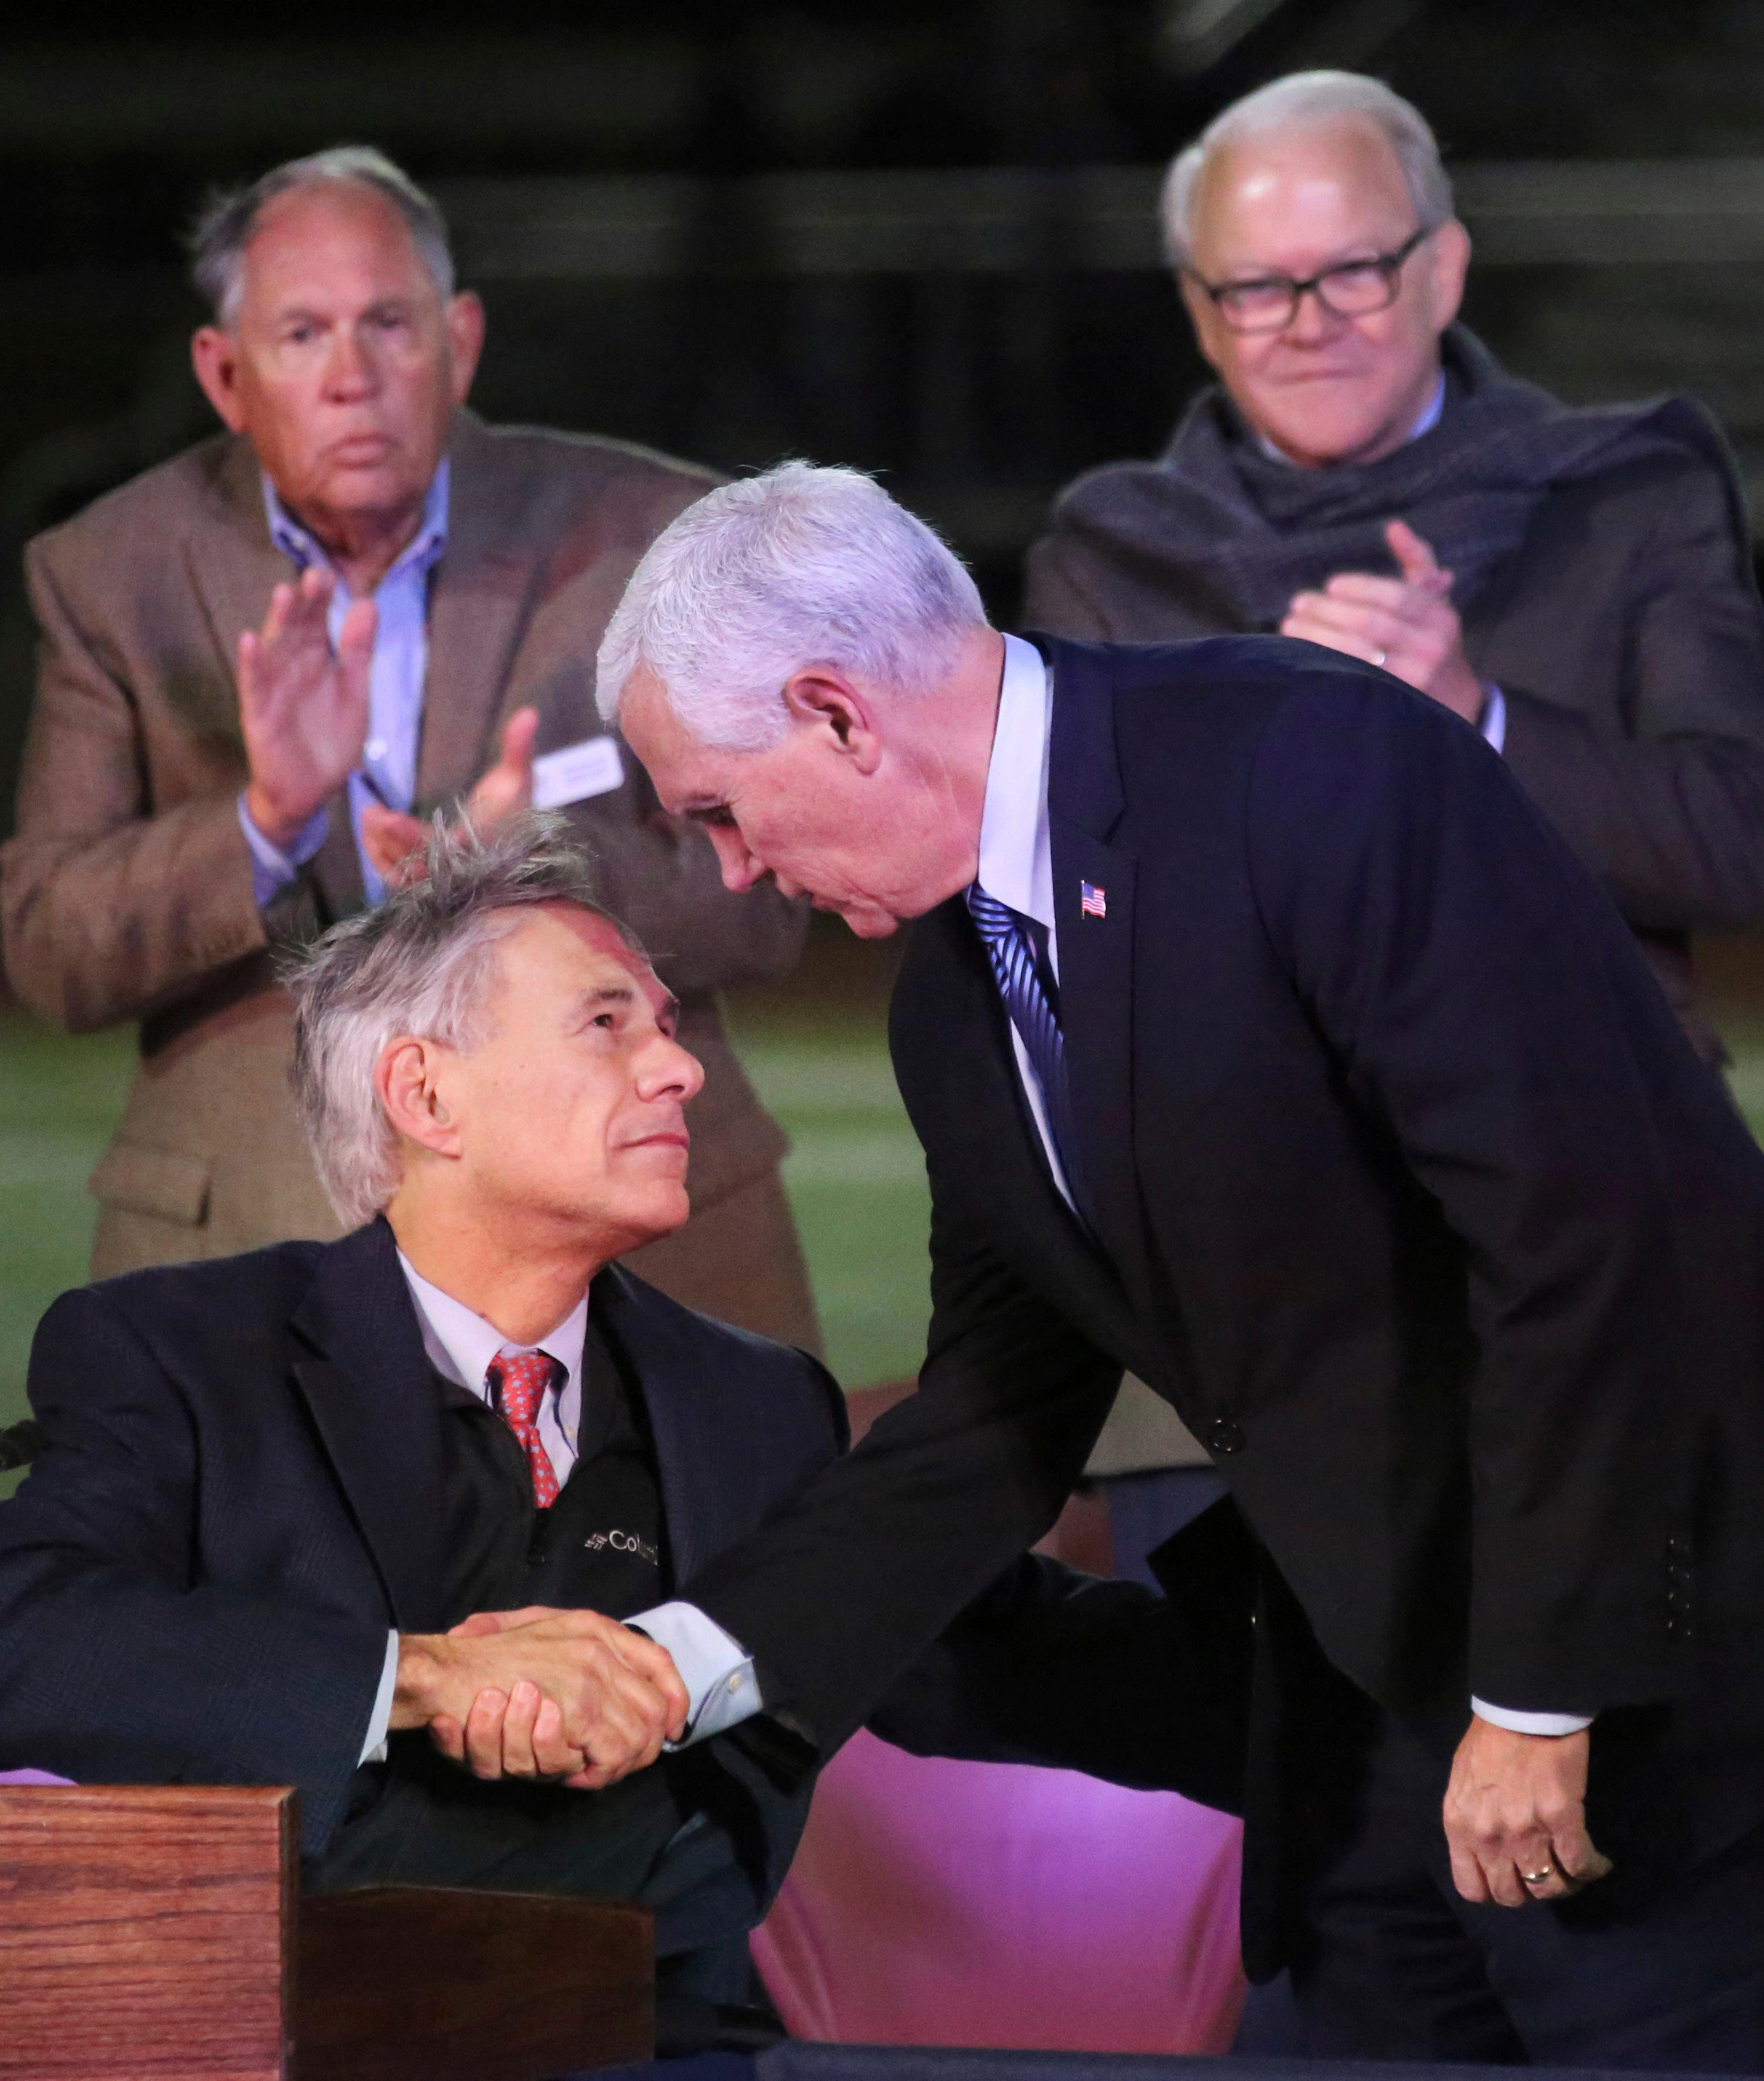 U.S. Vice President Mike Pence, right, shakes hands with Texas Governor Greg Abbott at a prayer vigil for the victims of the shooting at Sutherland Springs First Baptist Church, held at the Floresville High School Football Stadium, Wednesday, Nov. 8, 2017, in Floresville, Texas. (Louis DeLuca/The Dallas Morning News via AP)